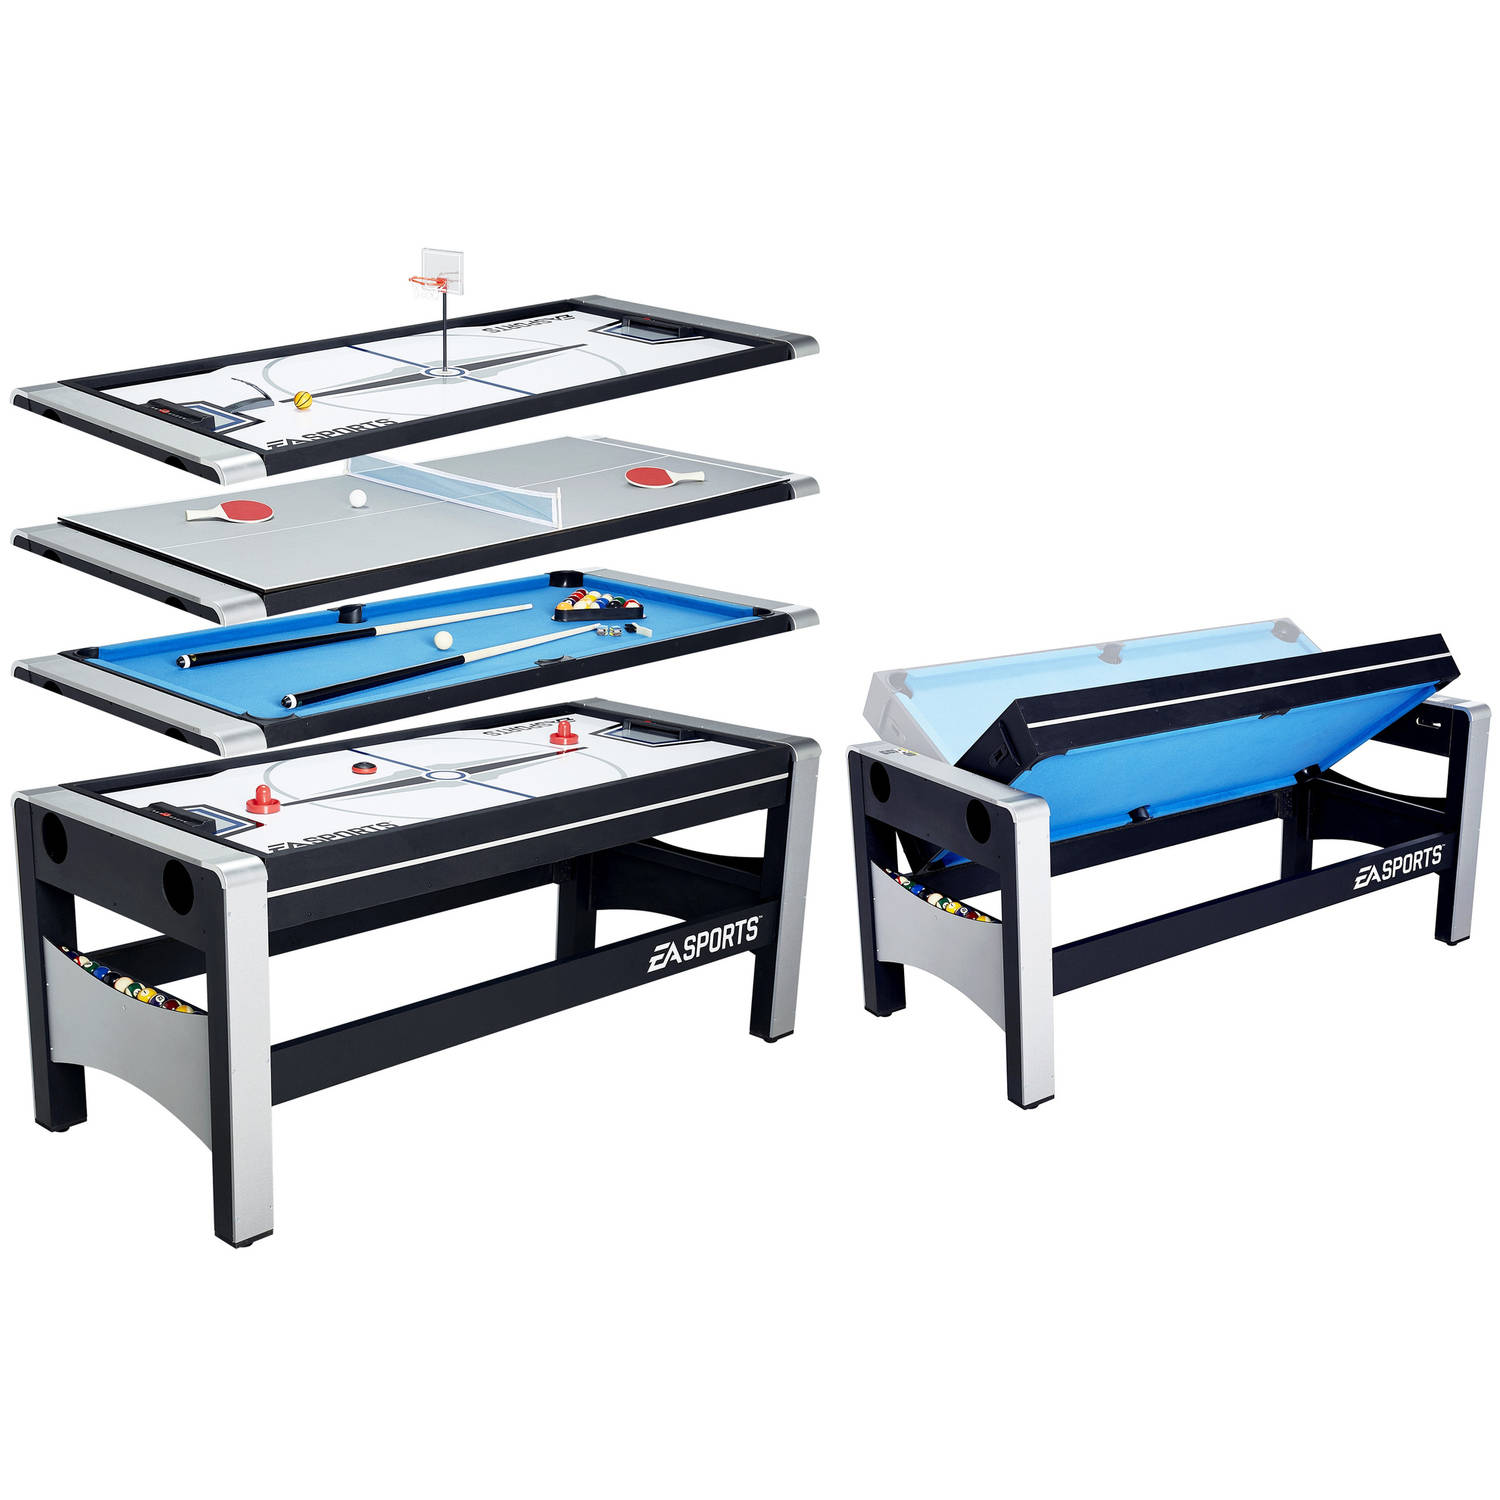 "EA SPORTS 72"" 4-in-1 Swivel Table"